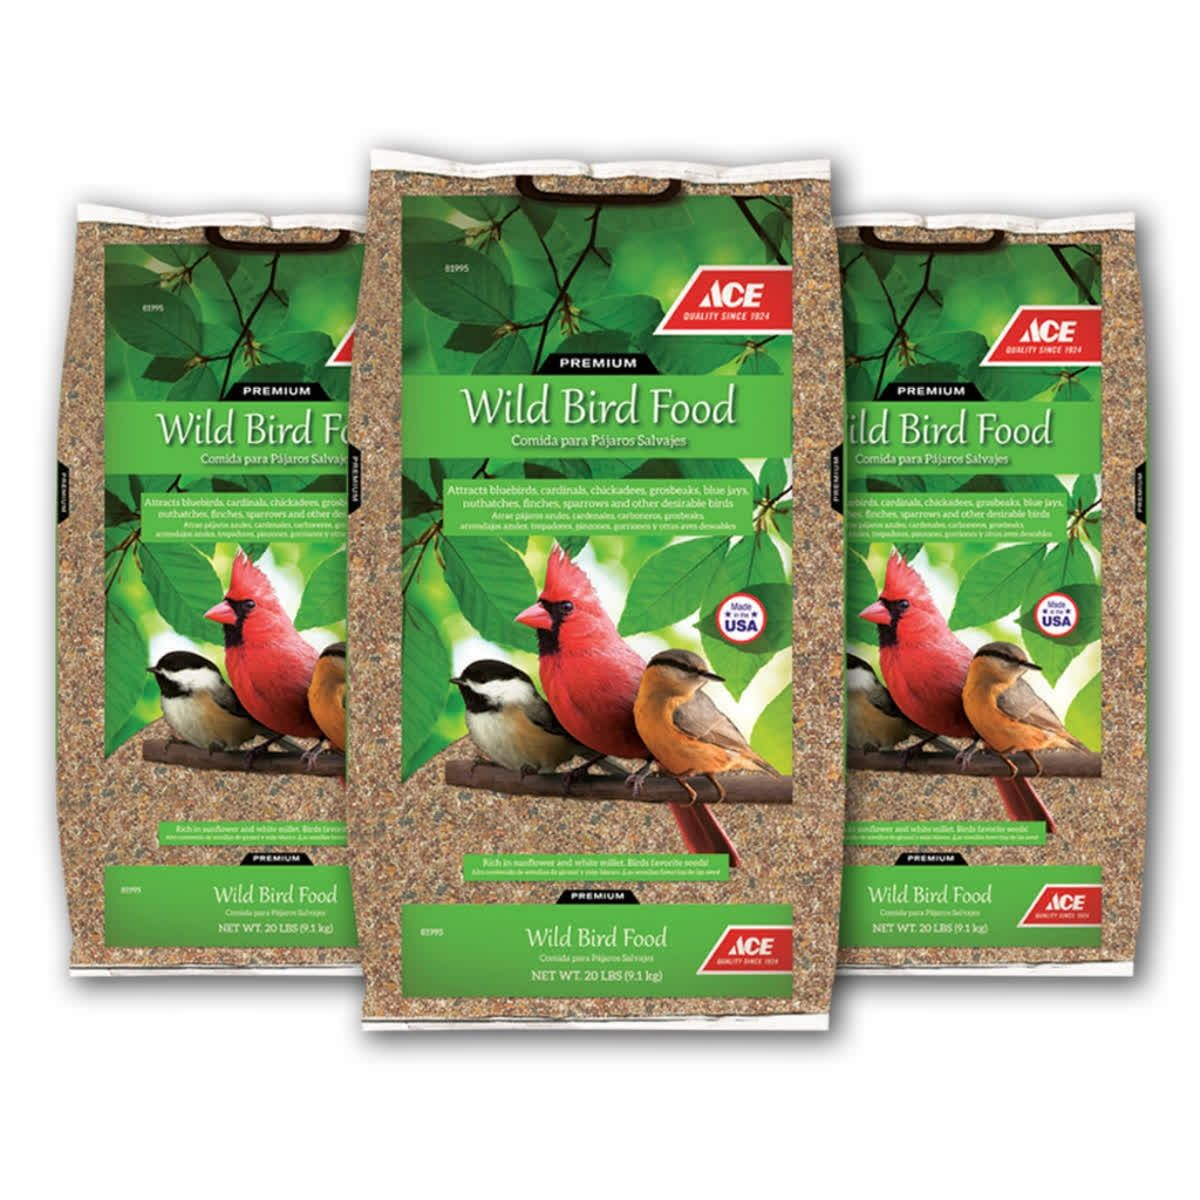 Stock Up For Your Backyard Birds With Buy 2 Get 1 Free On Our Wild Bird Food Good Thru 2 28 18 See Store For Deta Wild Bird Food Backyard Birds Wild Birds